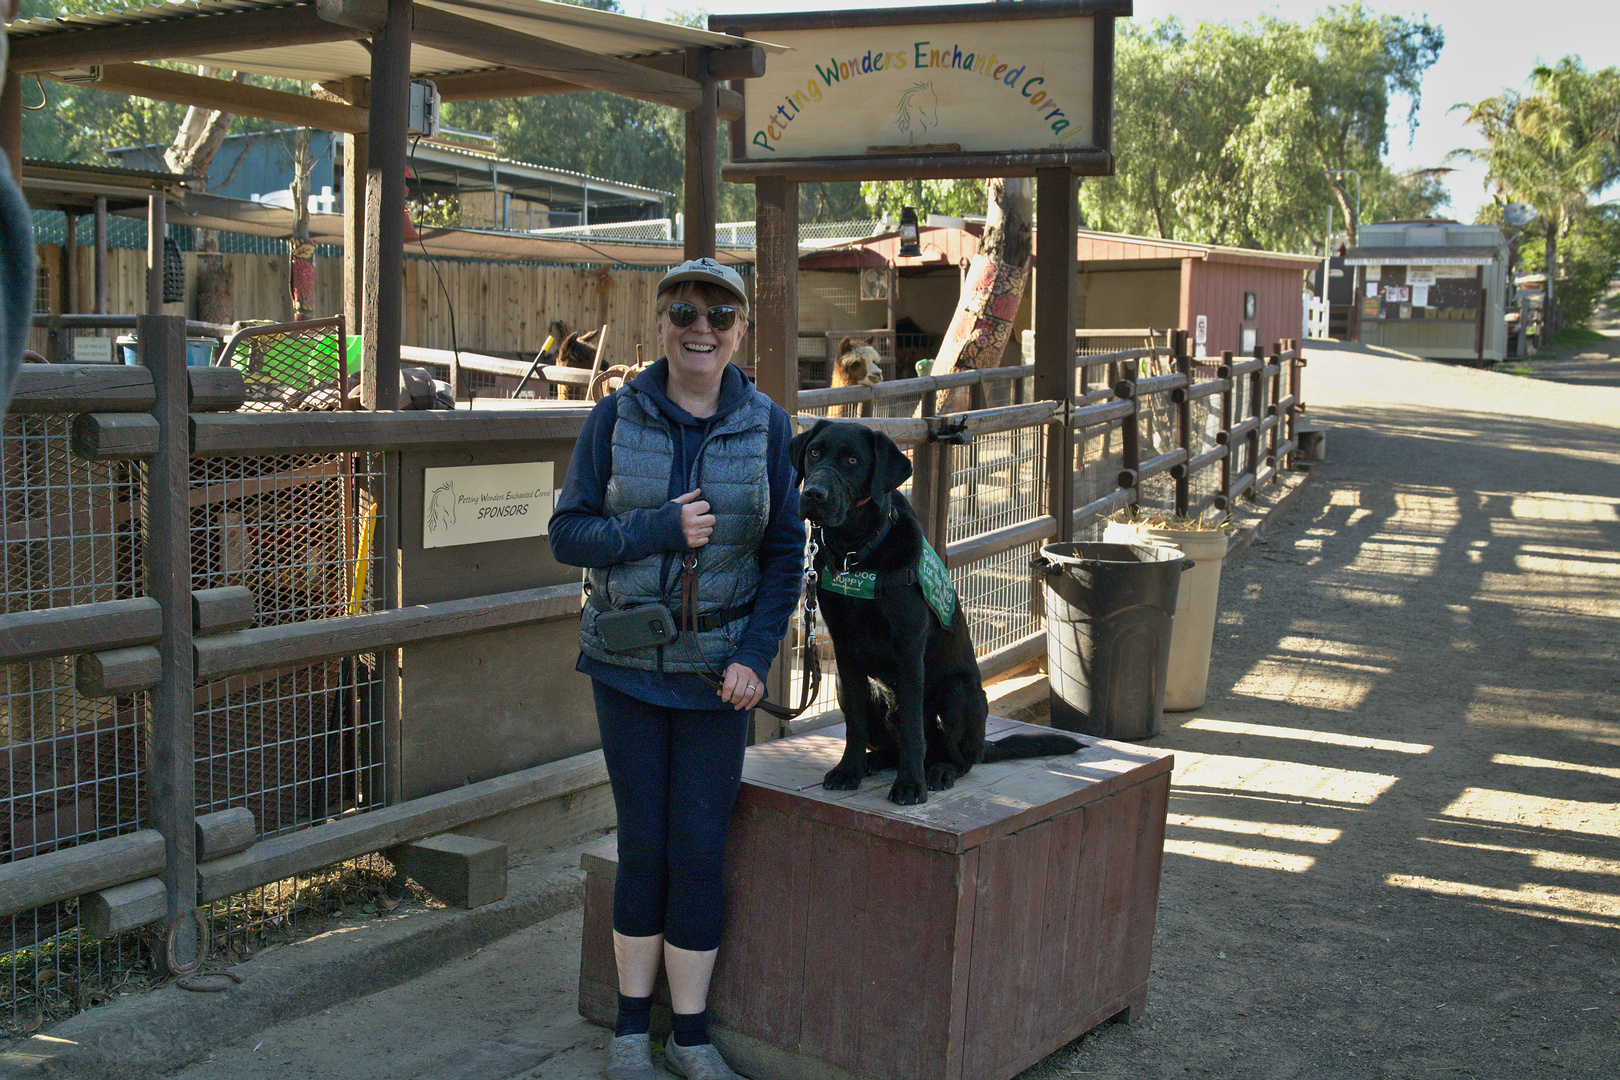 Brenda with Dash at the petting zoo